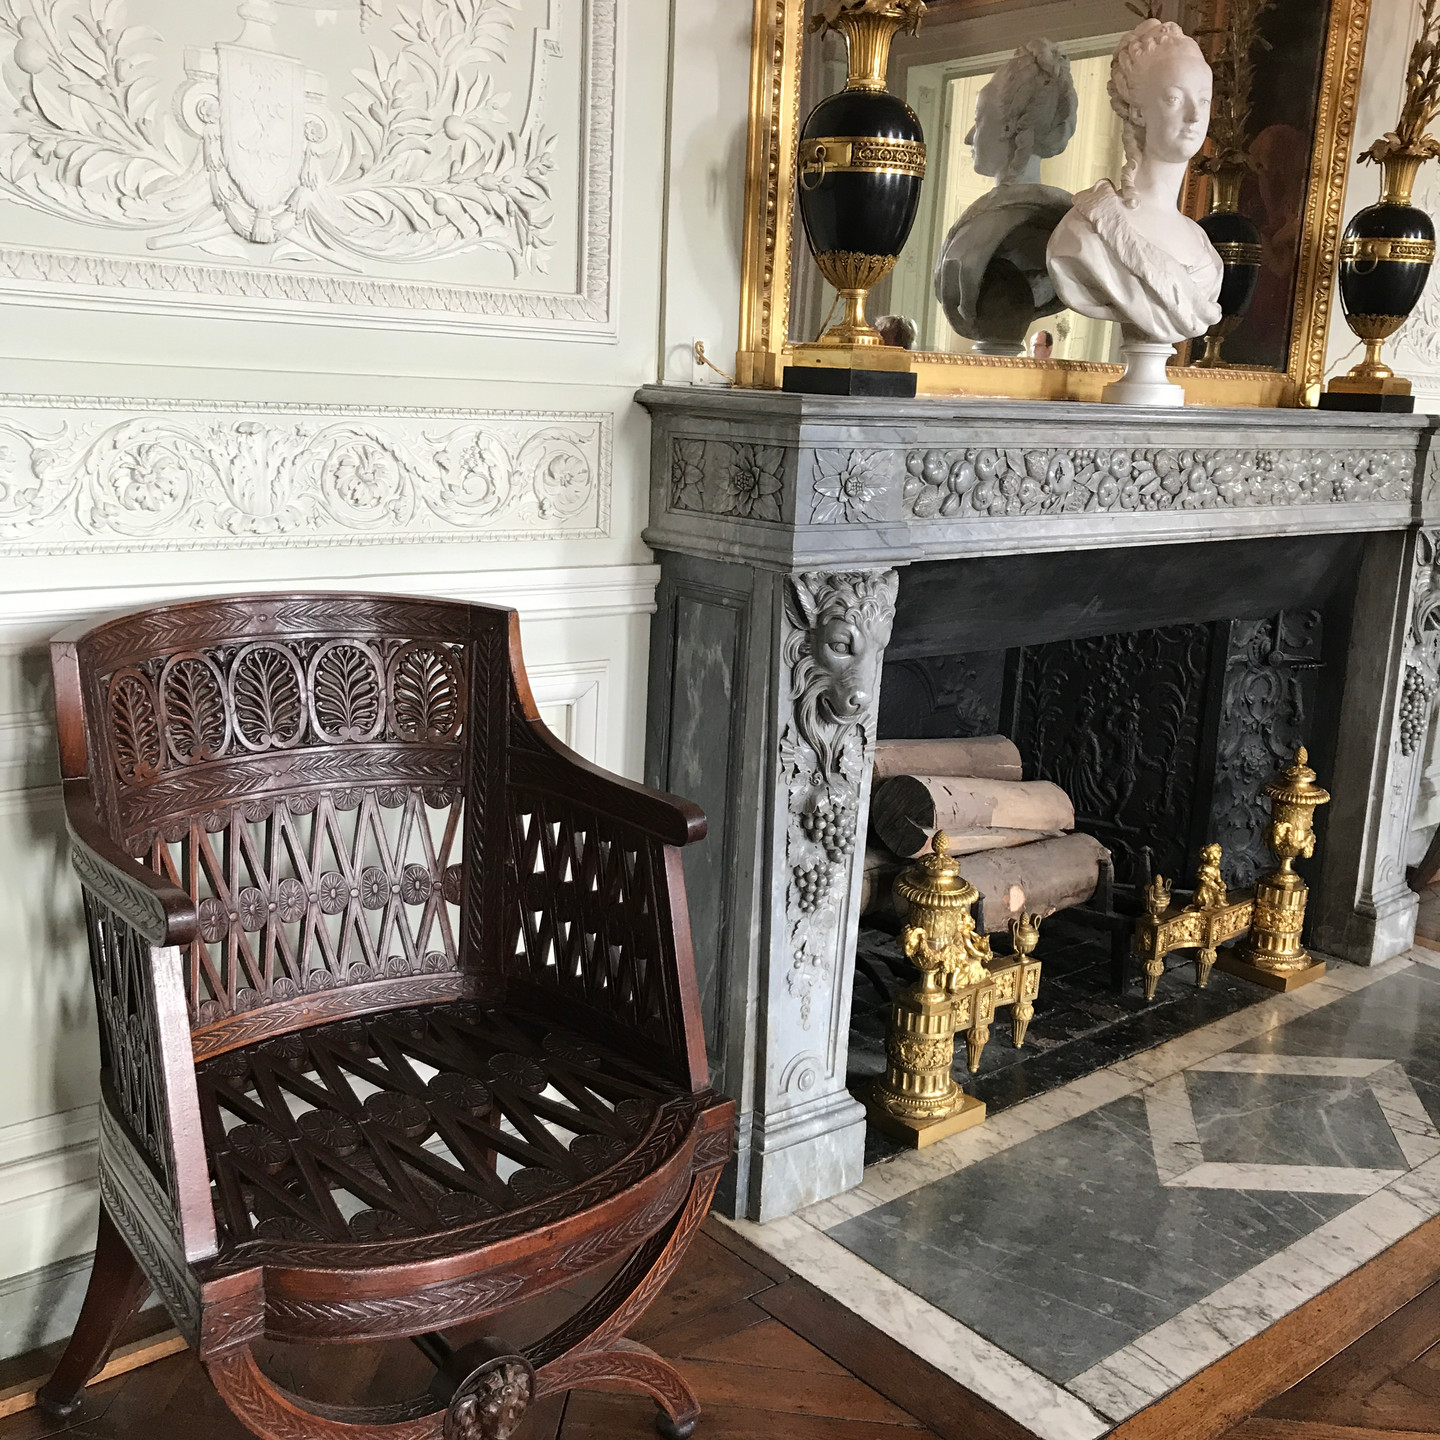 Carved Wooden Armchair next to Fireplace at Versailles